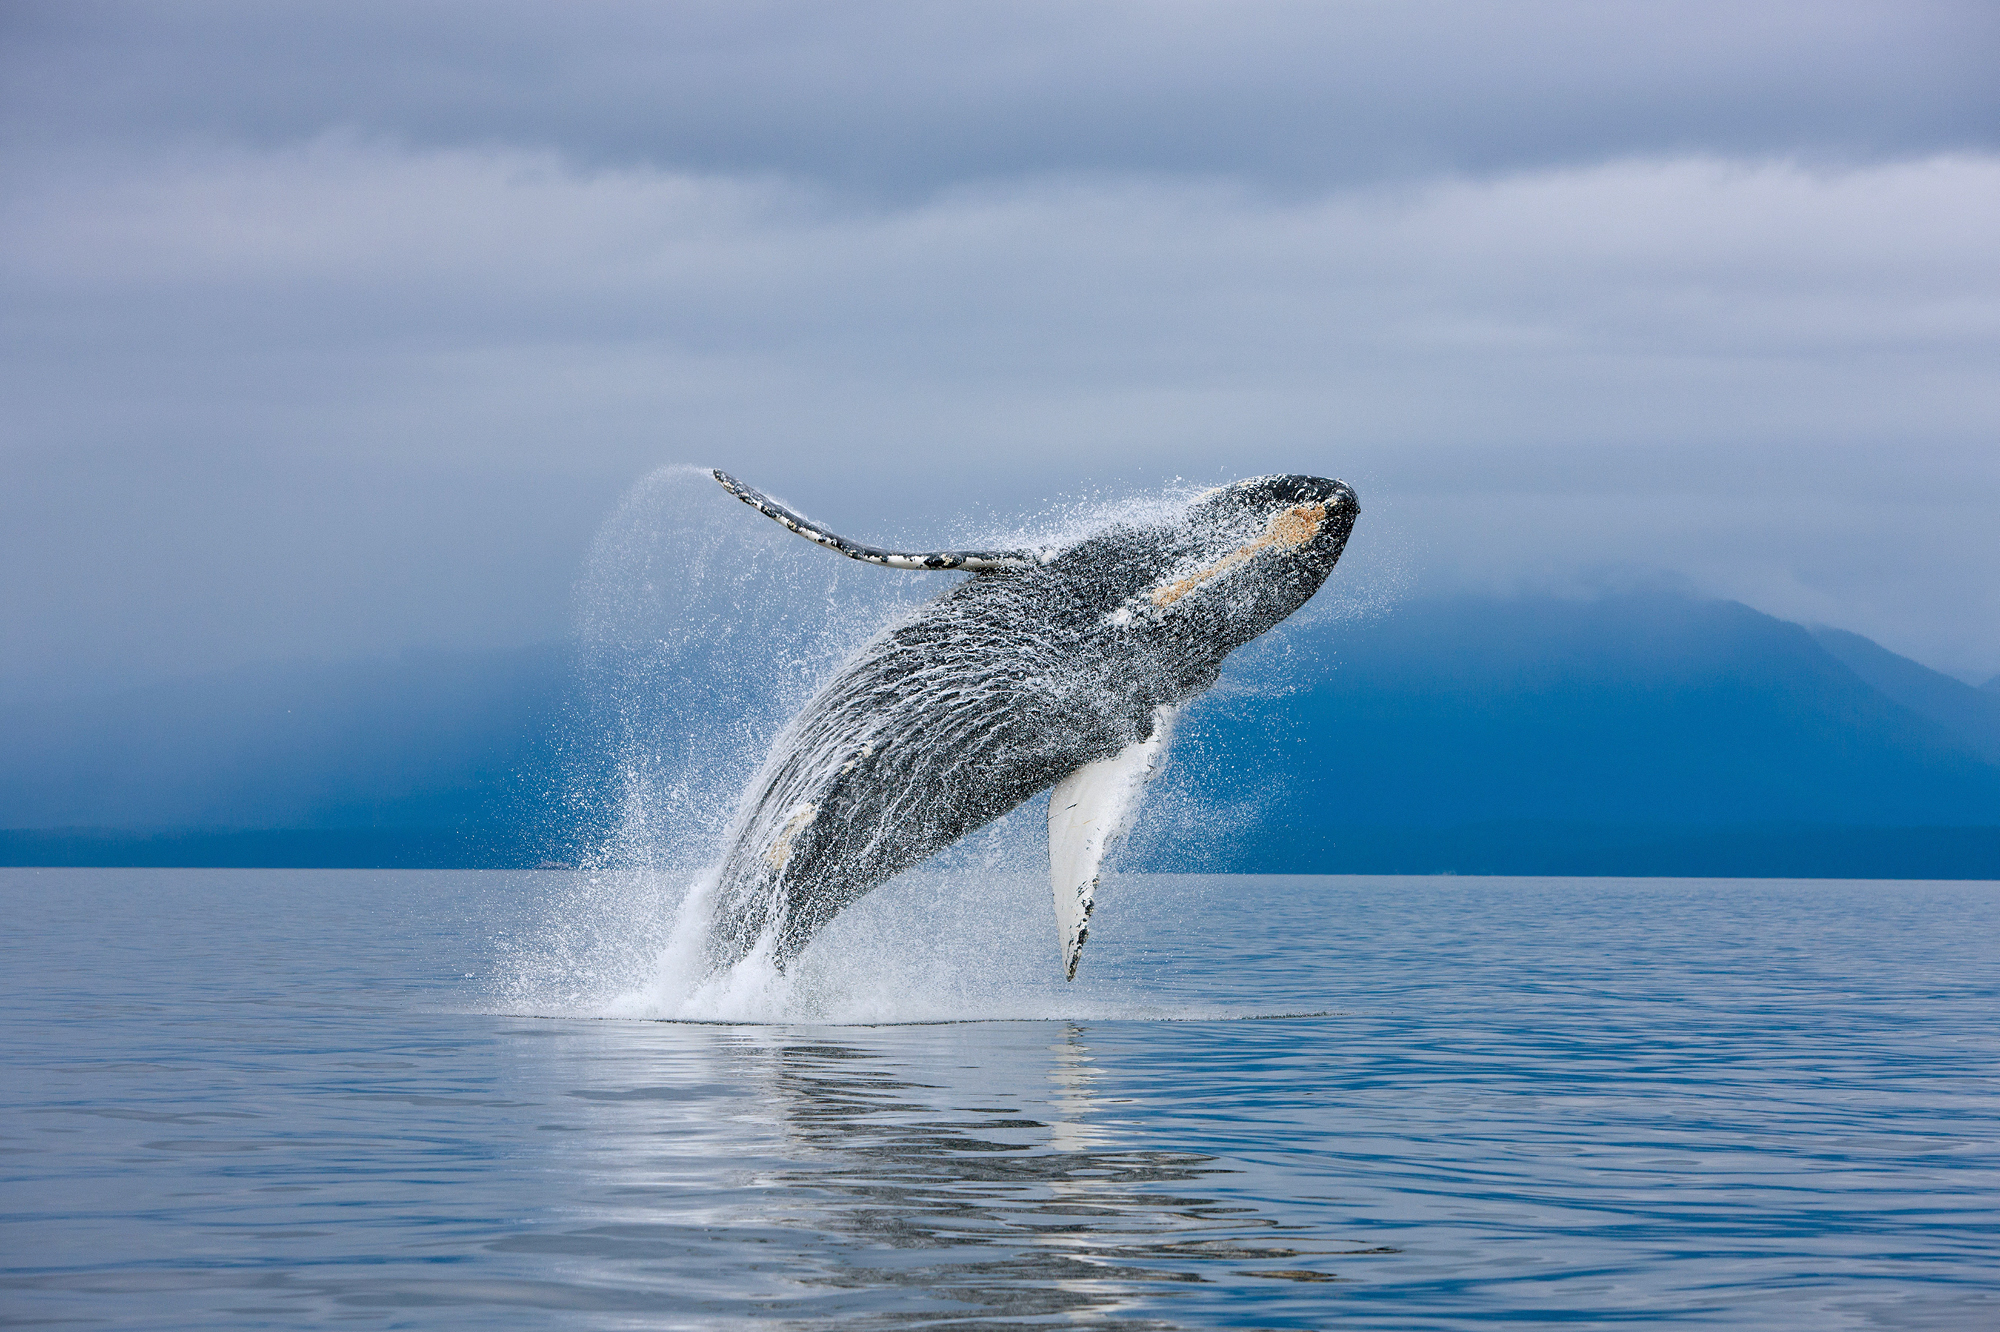 The whale's behaviour is observed before participants dive in to 'meet' them